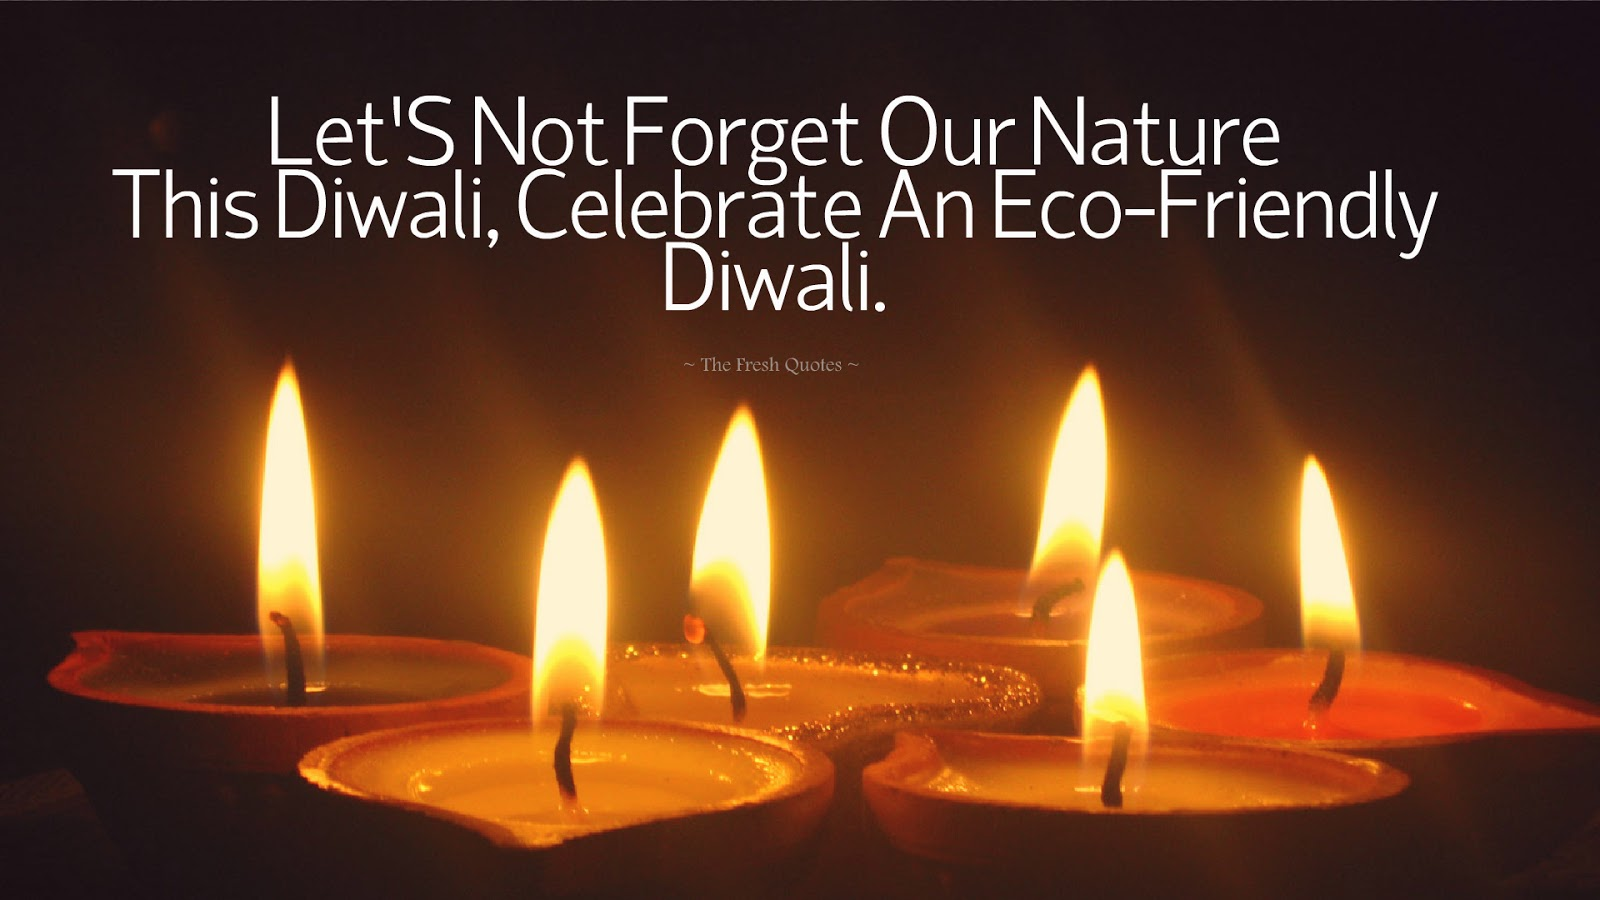 Happy Diwali 2016 Greeting Cards Diwali Wishes Quotes Diwali